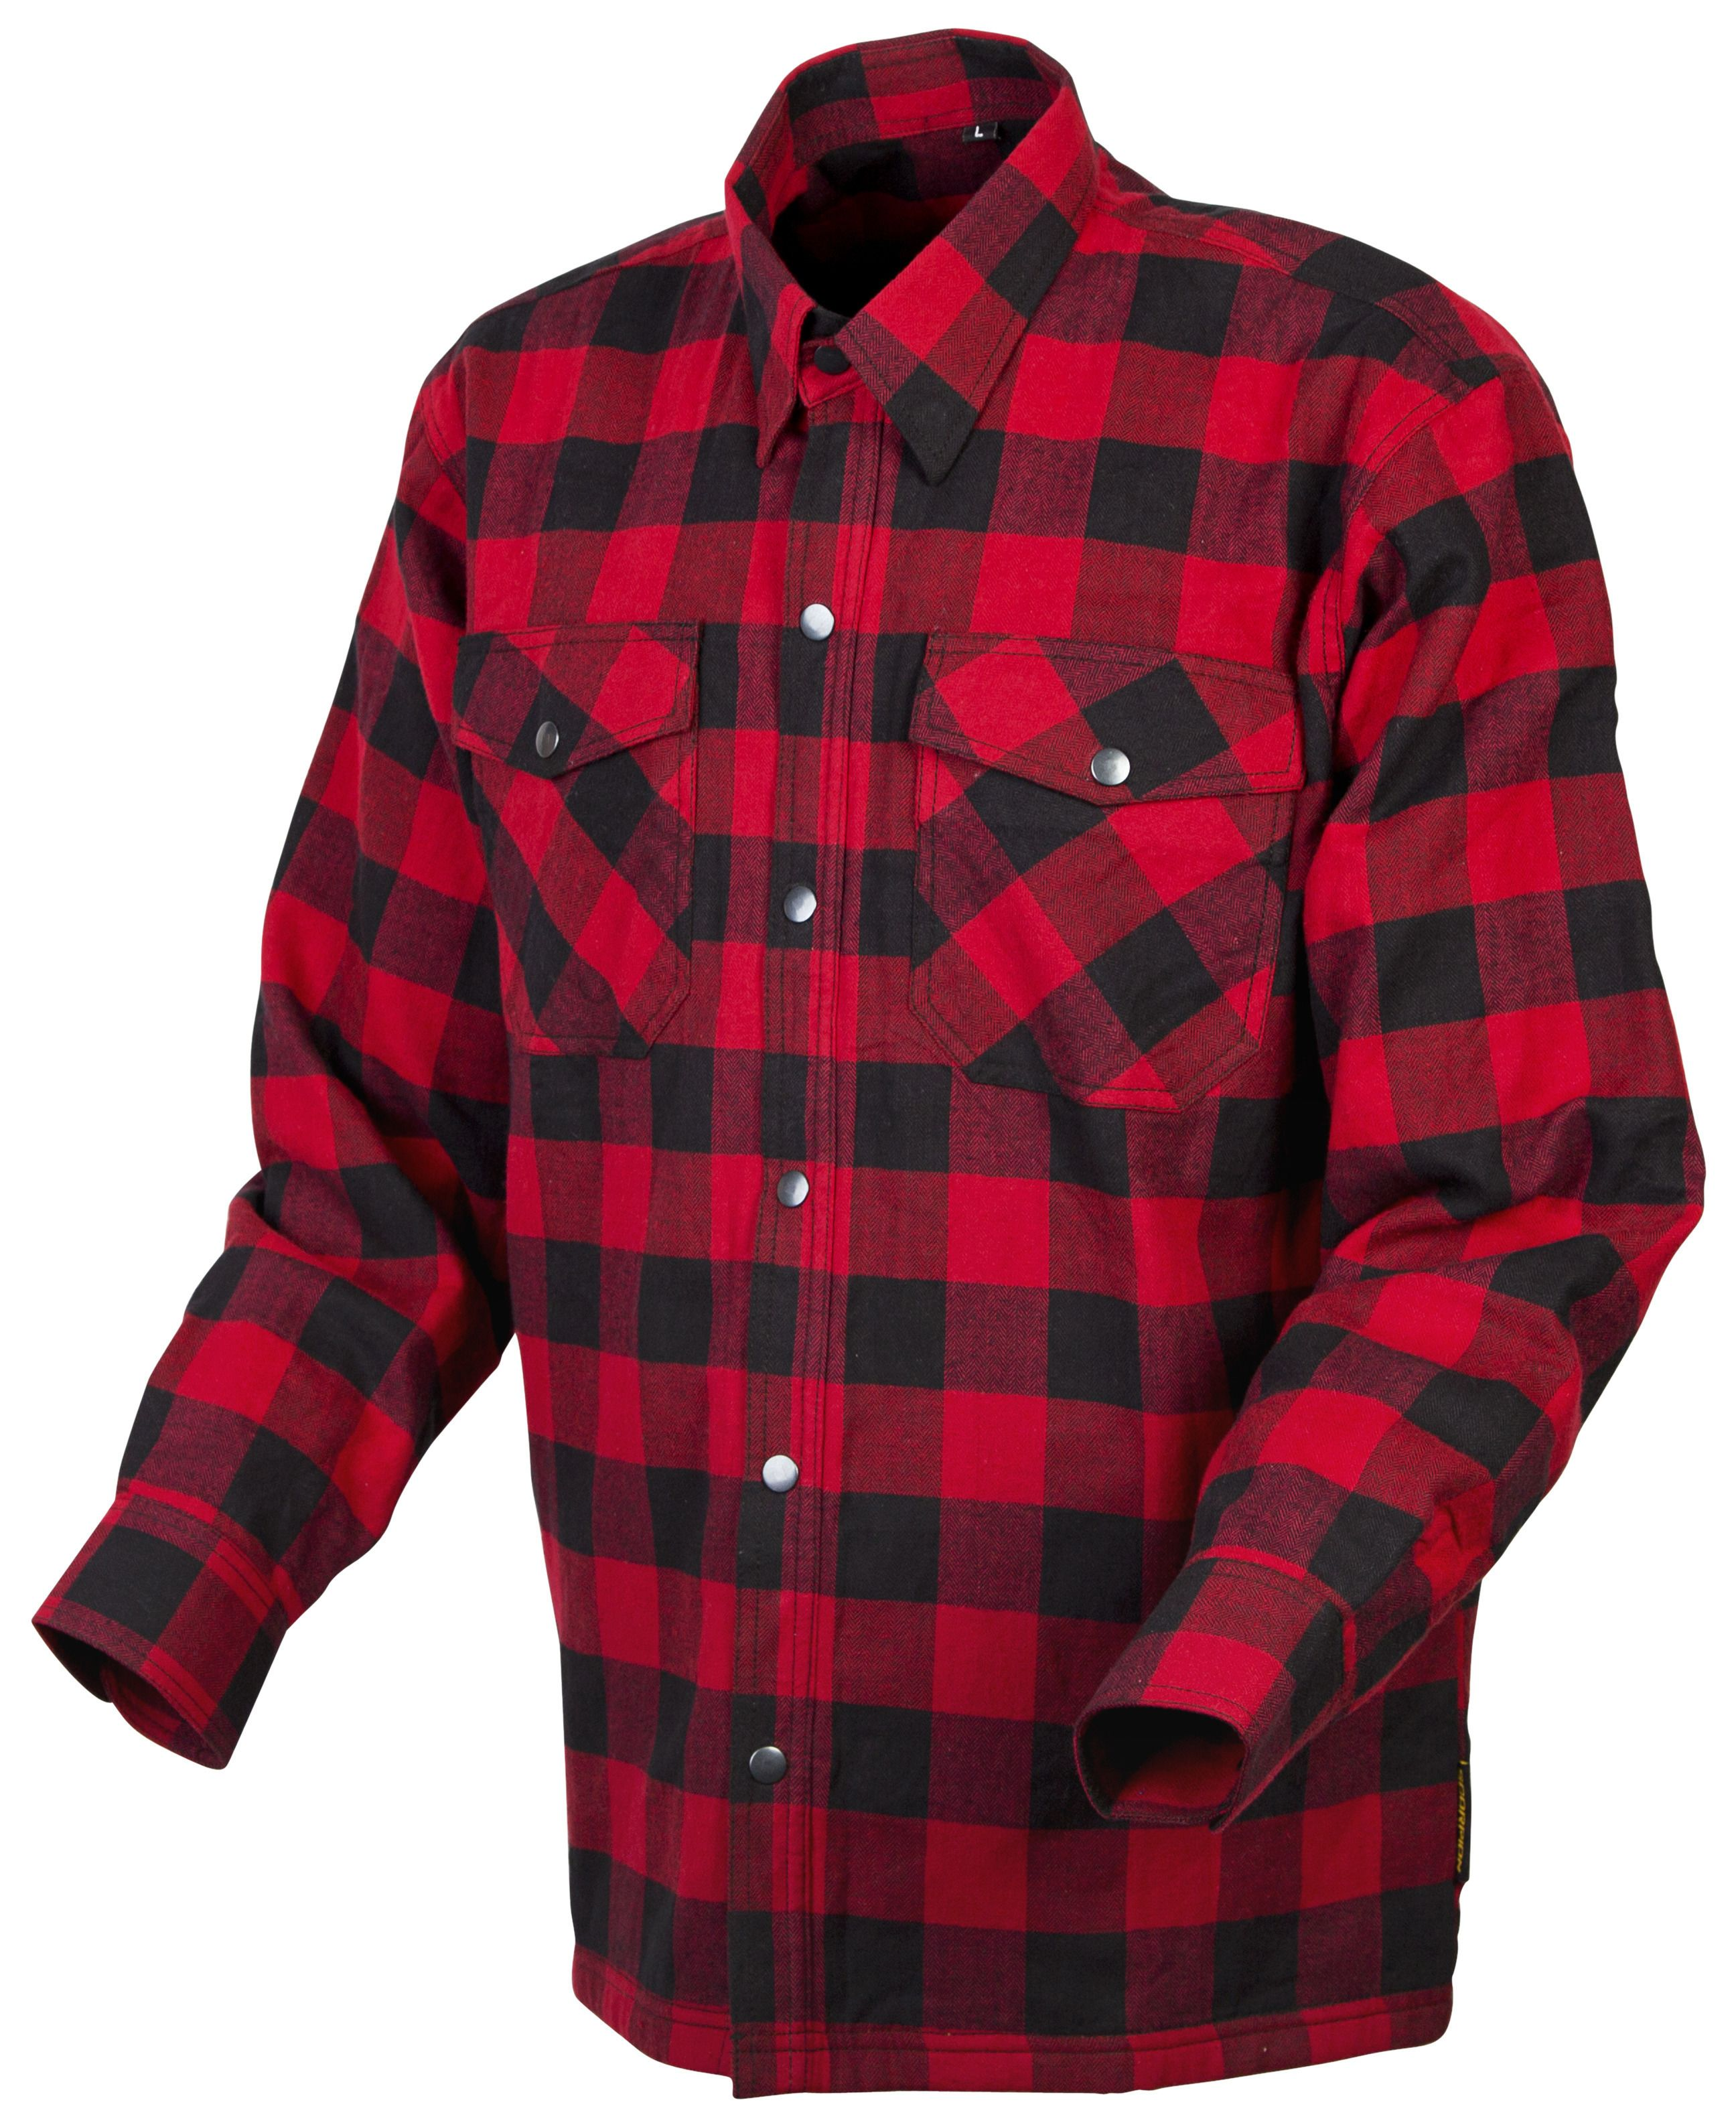 red plaid flannel shirt kamos t shirt. Black Bedroom Furniture Sets. Home Design Ideas